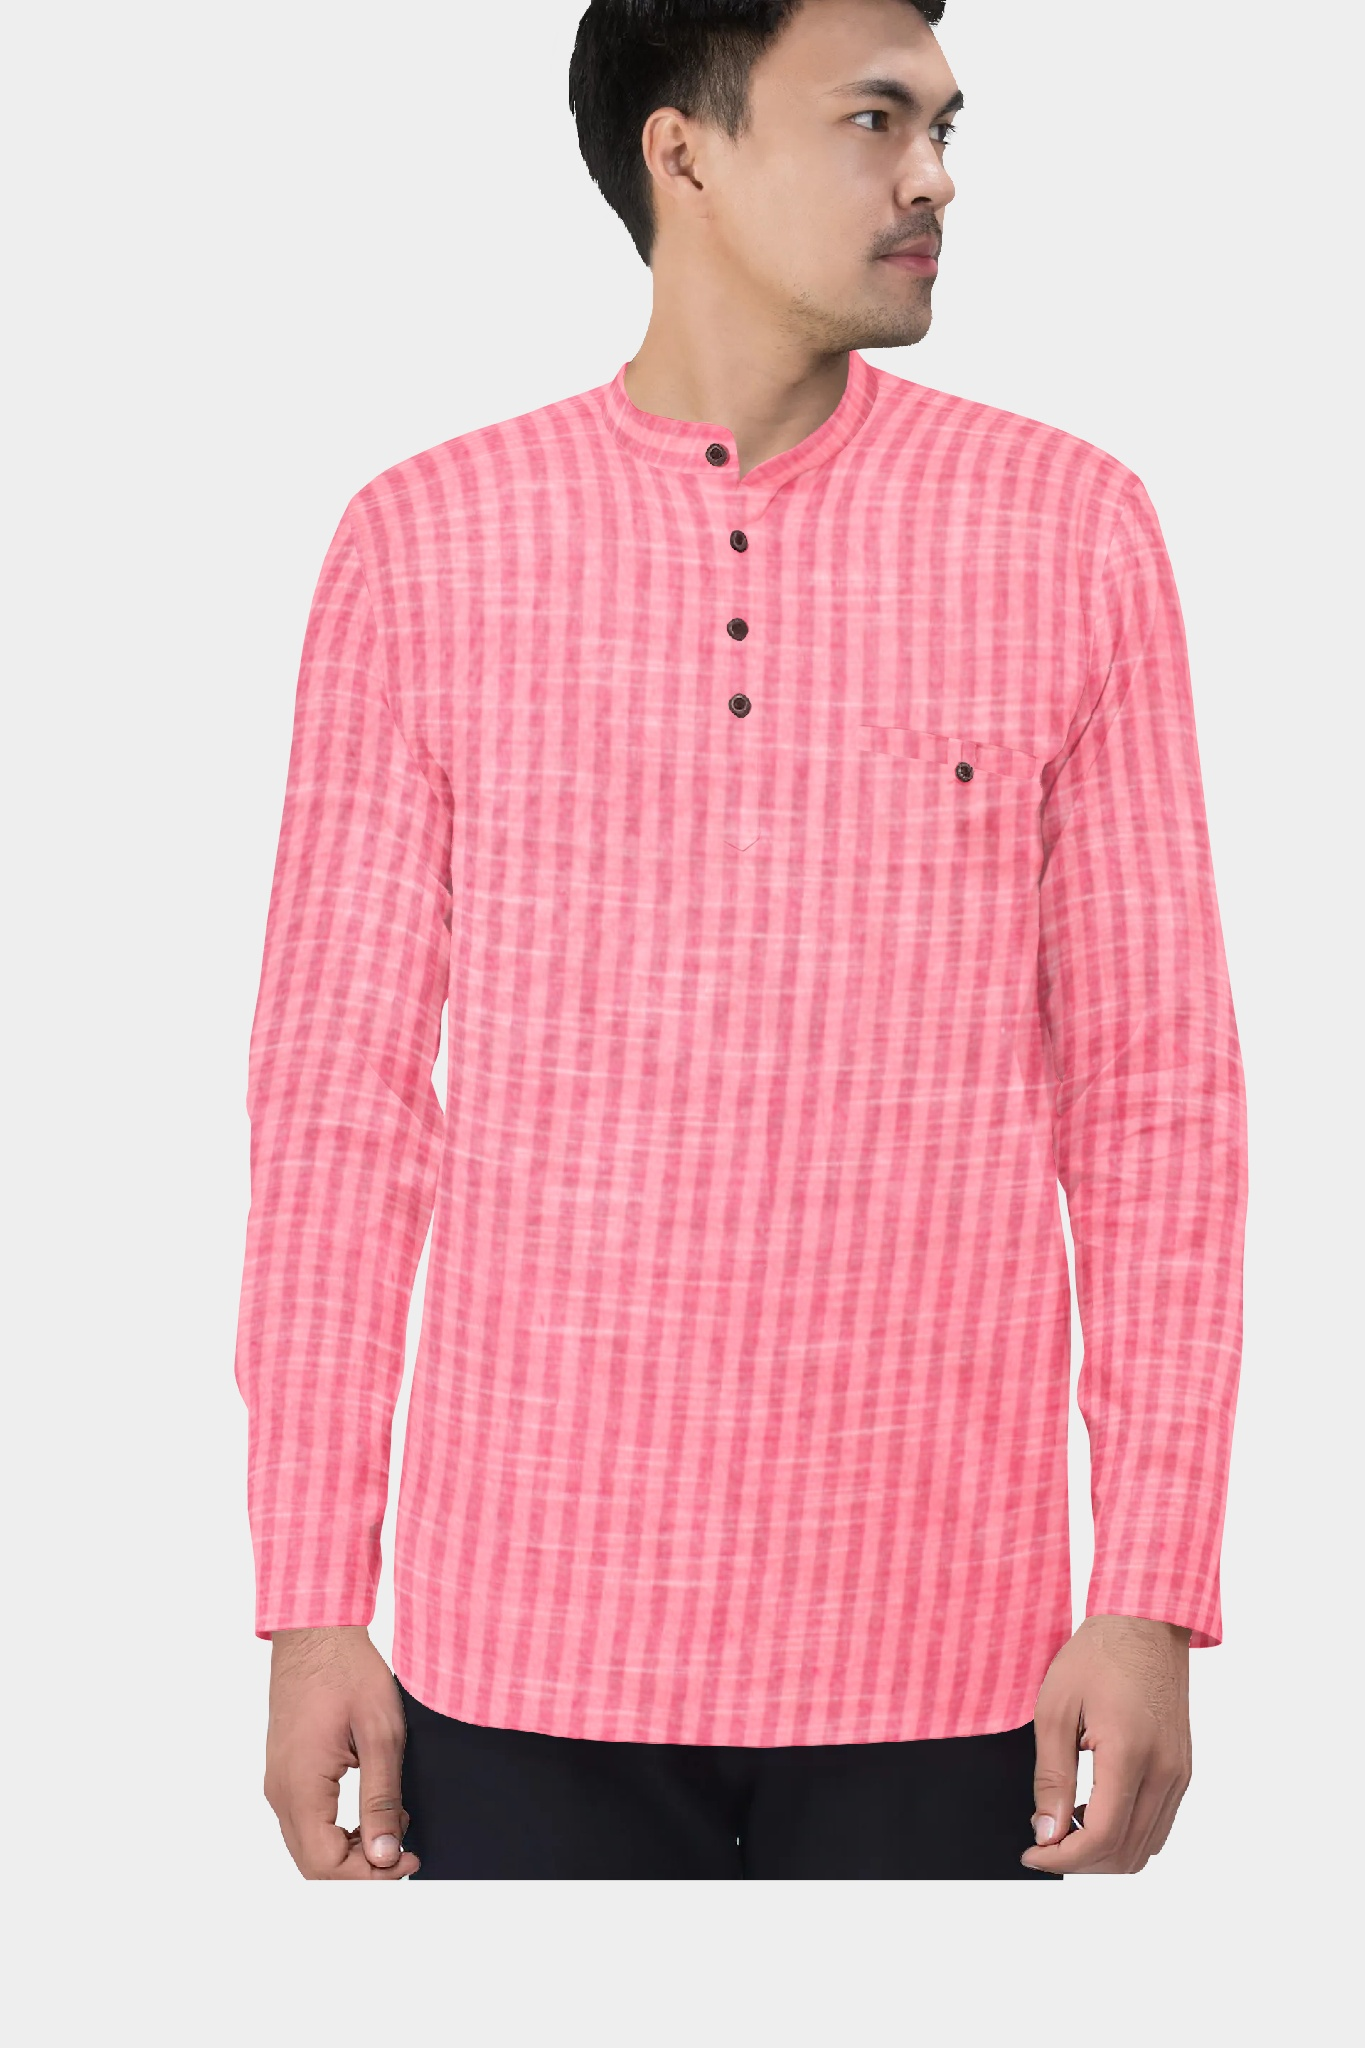 /home/customer/www/fabartcraft.com/public_html/uploadshttps://www.shopolics.com/uploads/images/medium/Pink-White-Cotton-Short-Kurta-35420.jpg